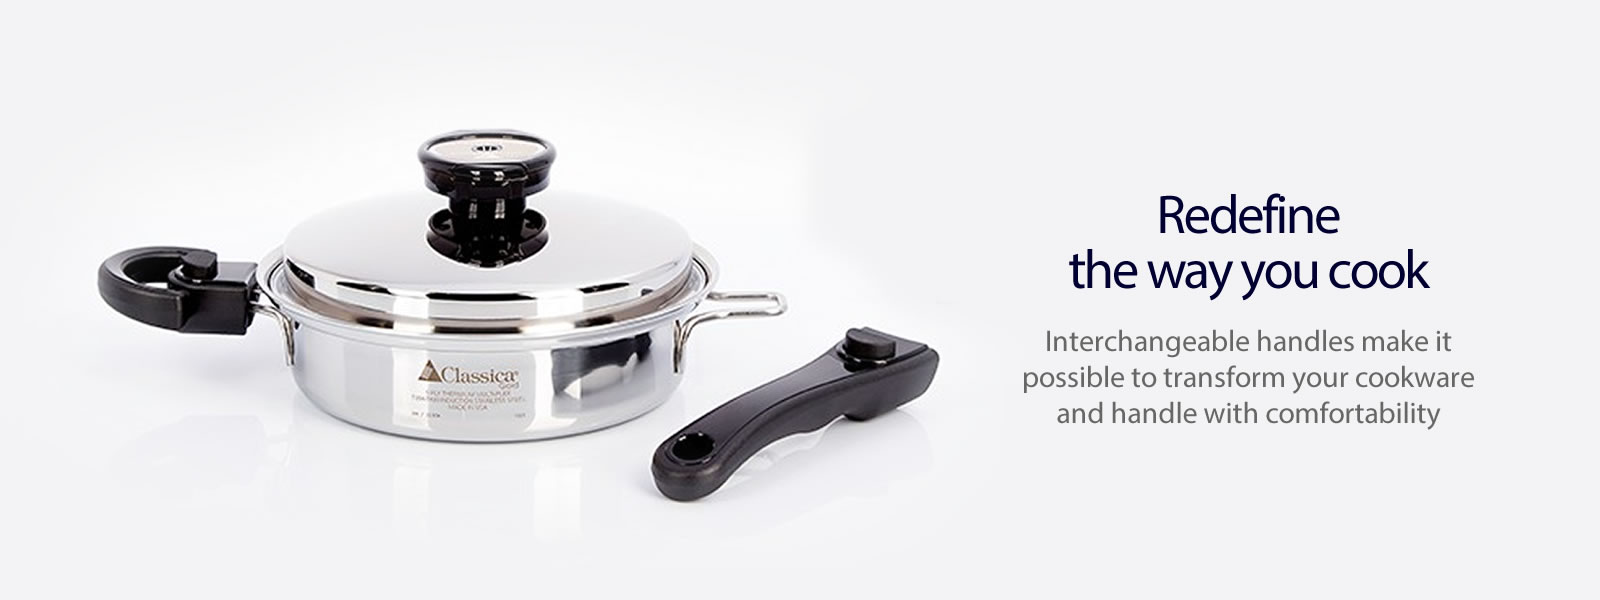 02 - Redefine the way you cook. Interchangeable handles make it possible to transform your cookware